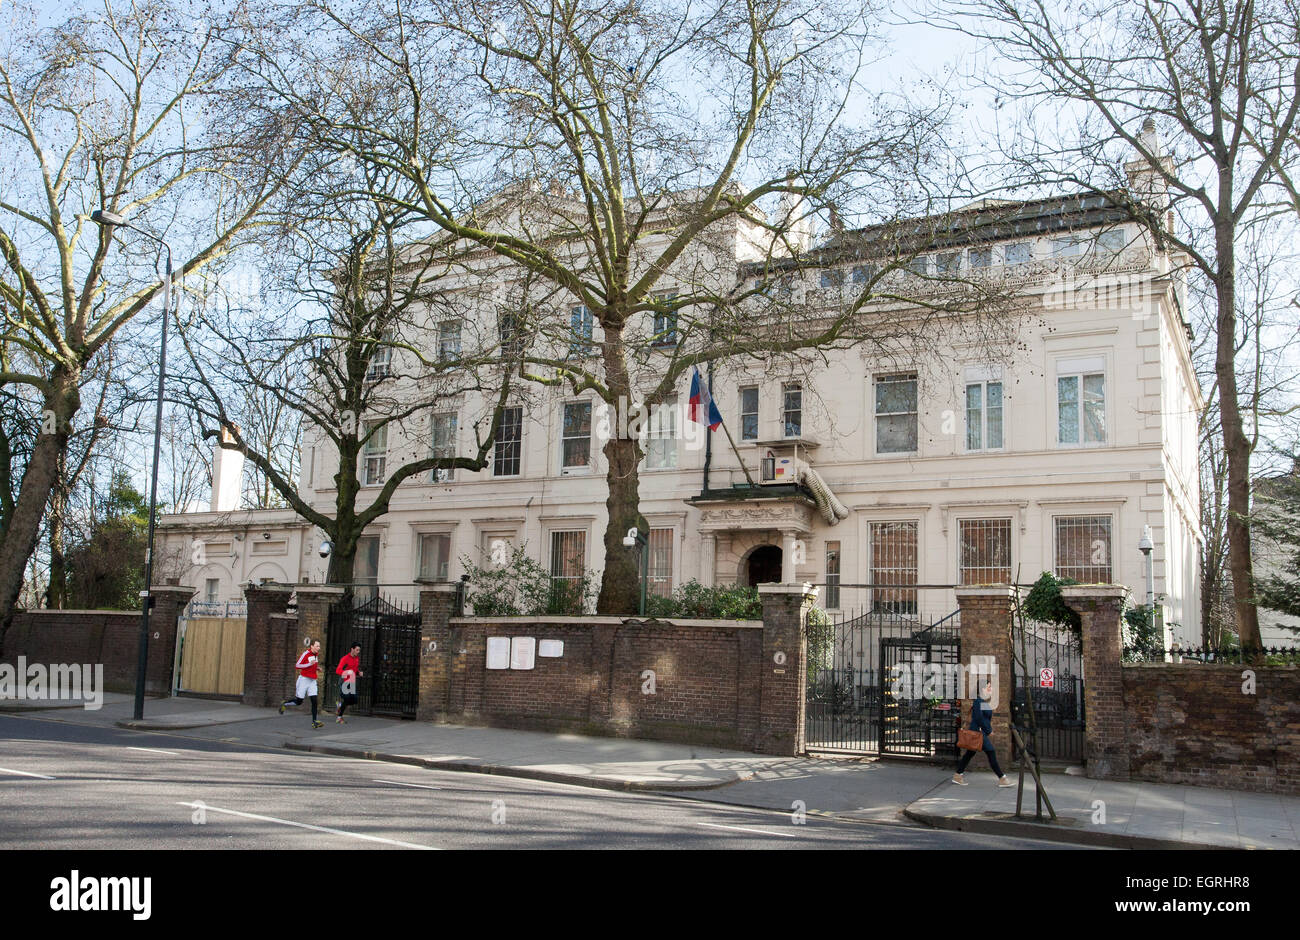 General View GV of The Embassy of the Russian Federation, 6-7 Kensington Palace Gardens, London W8 4QP - Stock Image